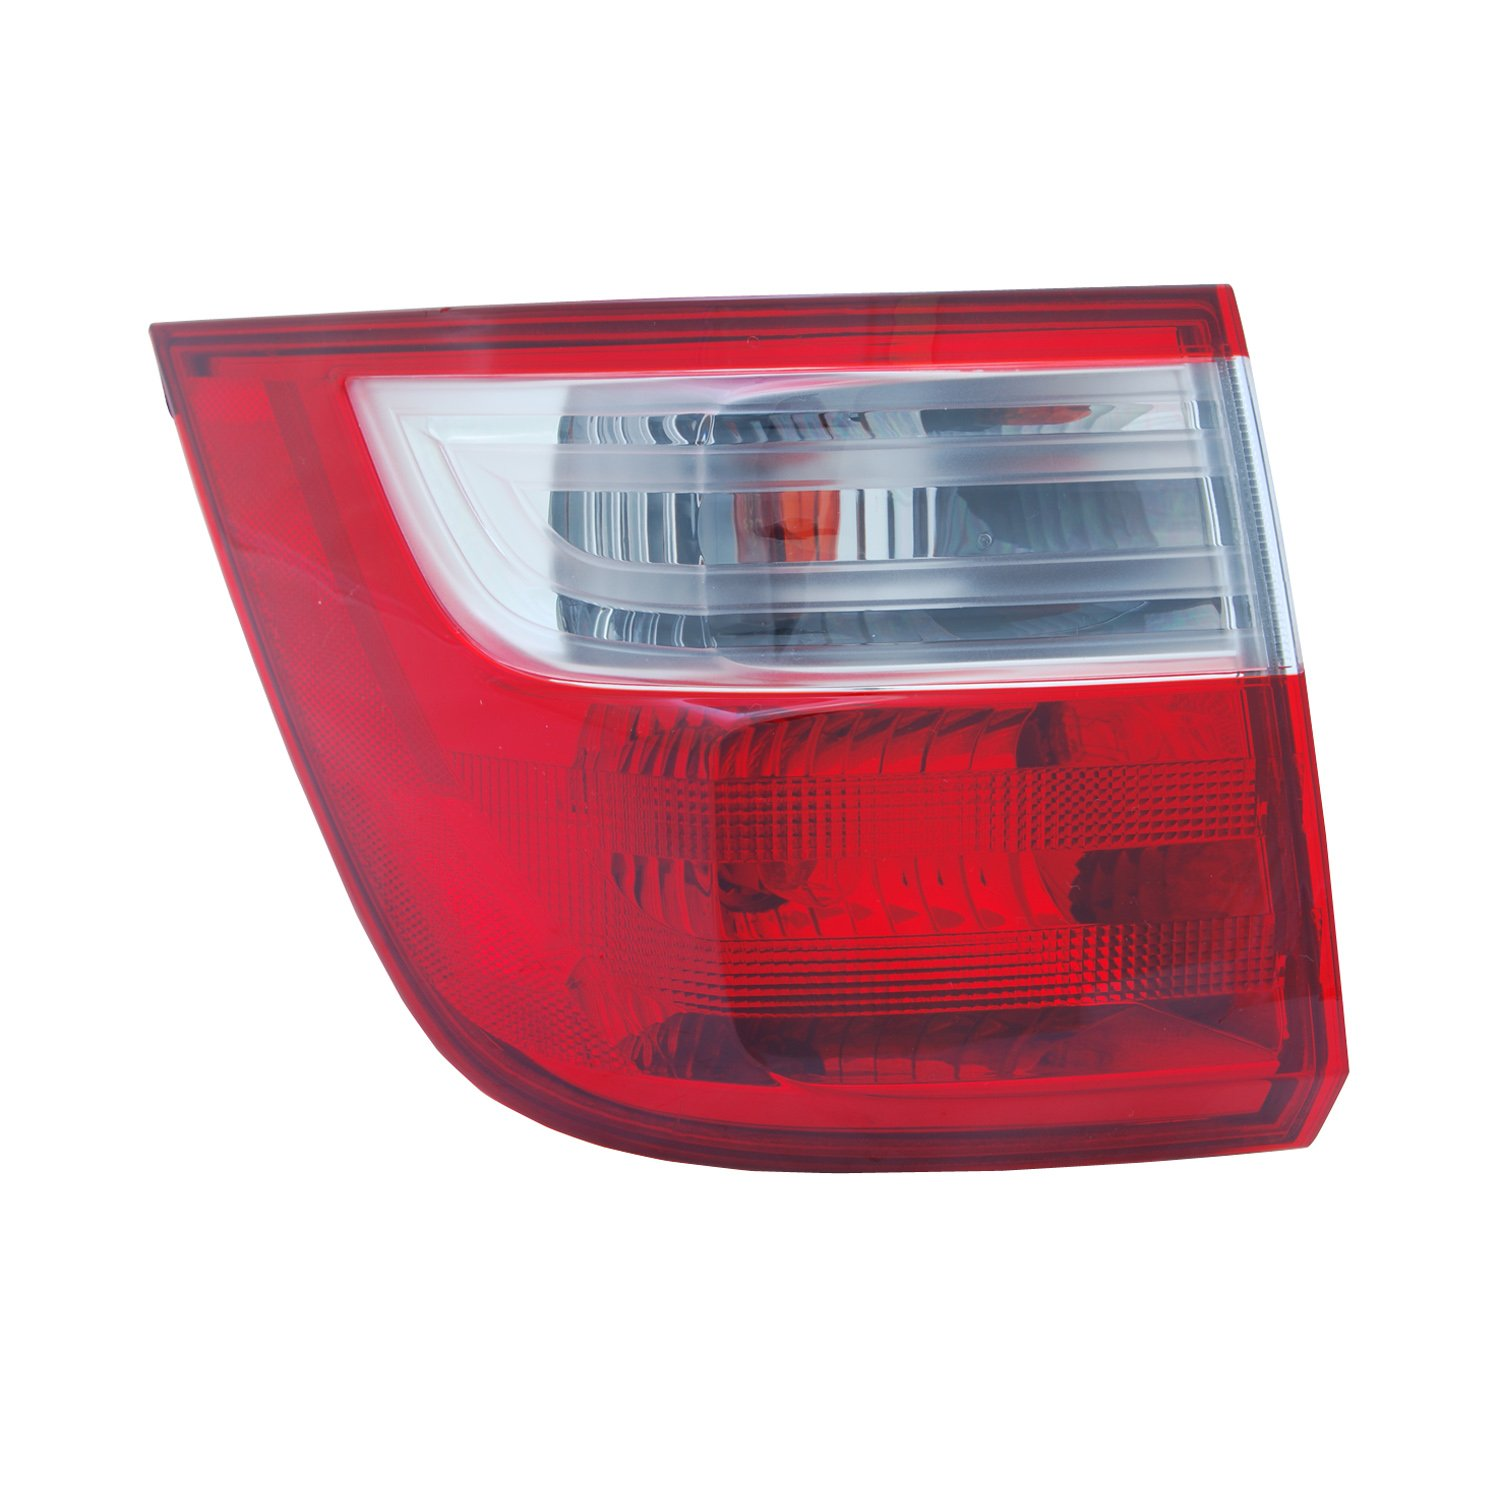 OE Replacement HONDA ODYSSEY Tail Light Assembly Multiple Manufacturers HO2804100N Partslink Number HO2804100